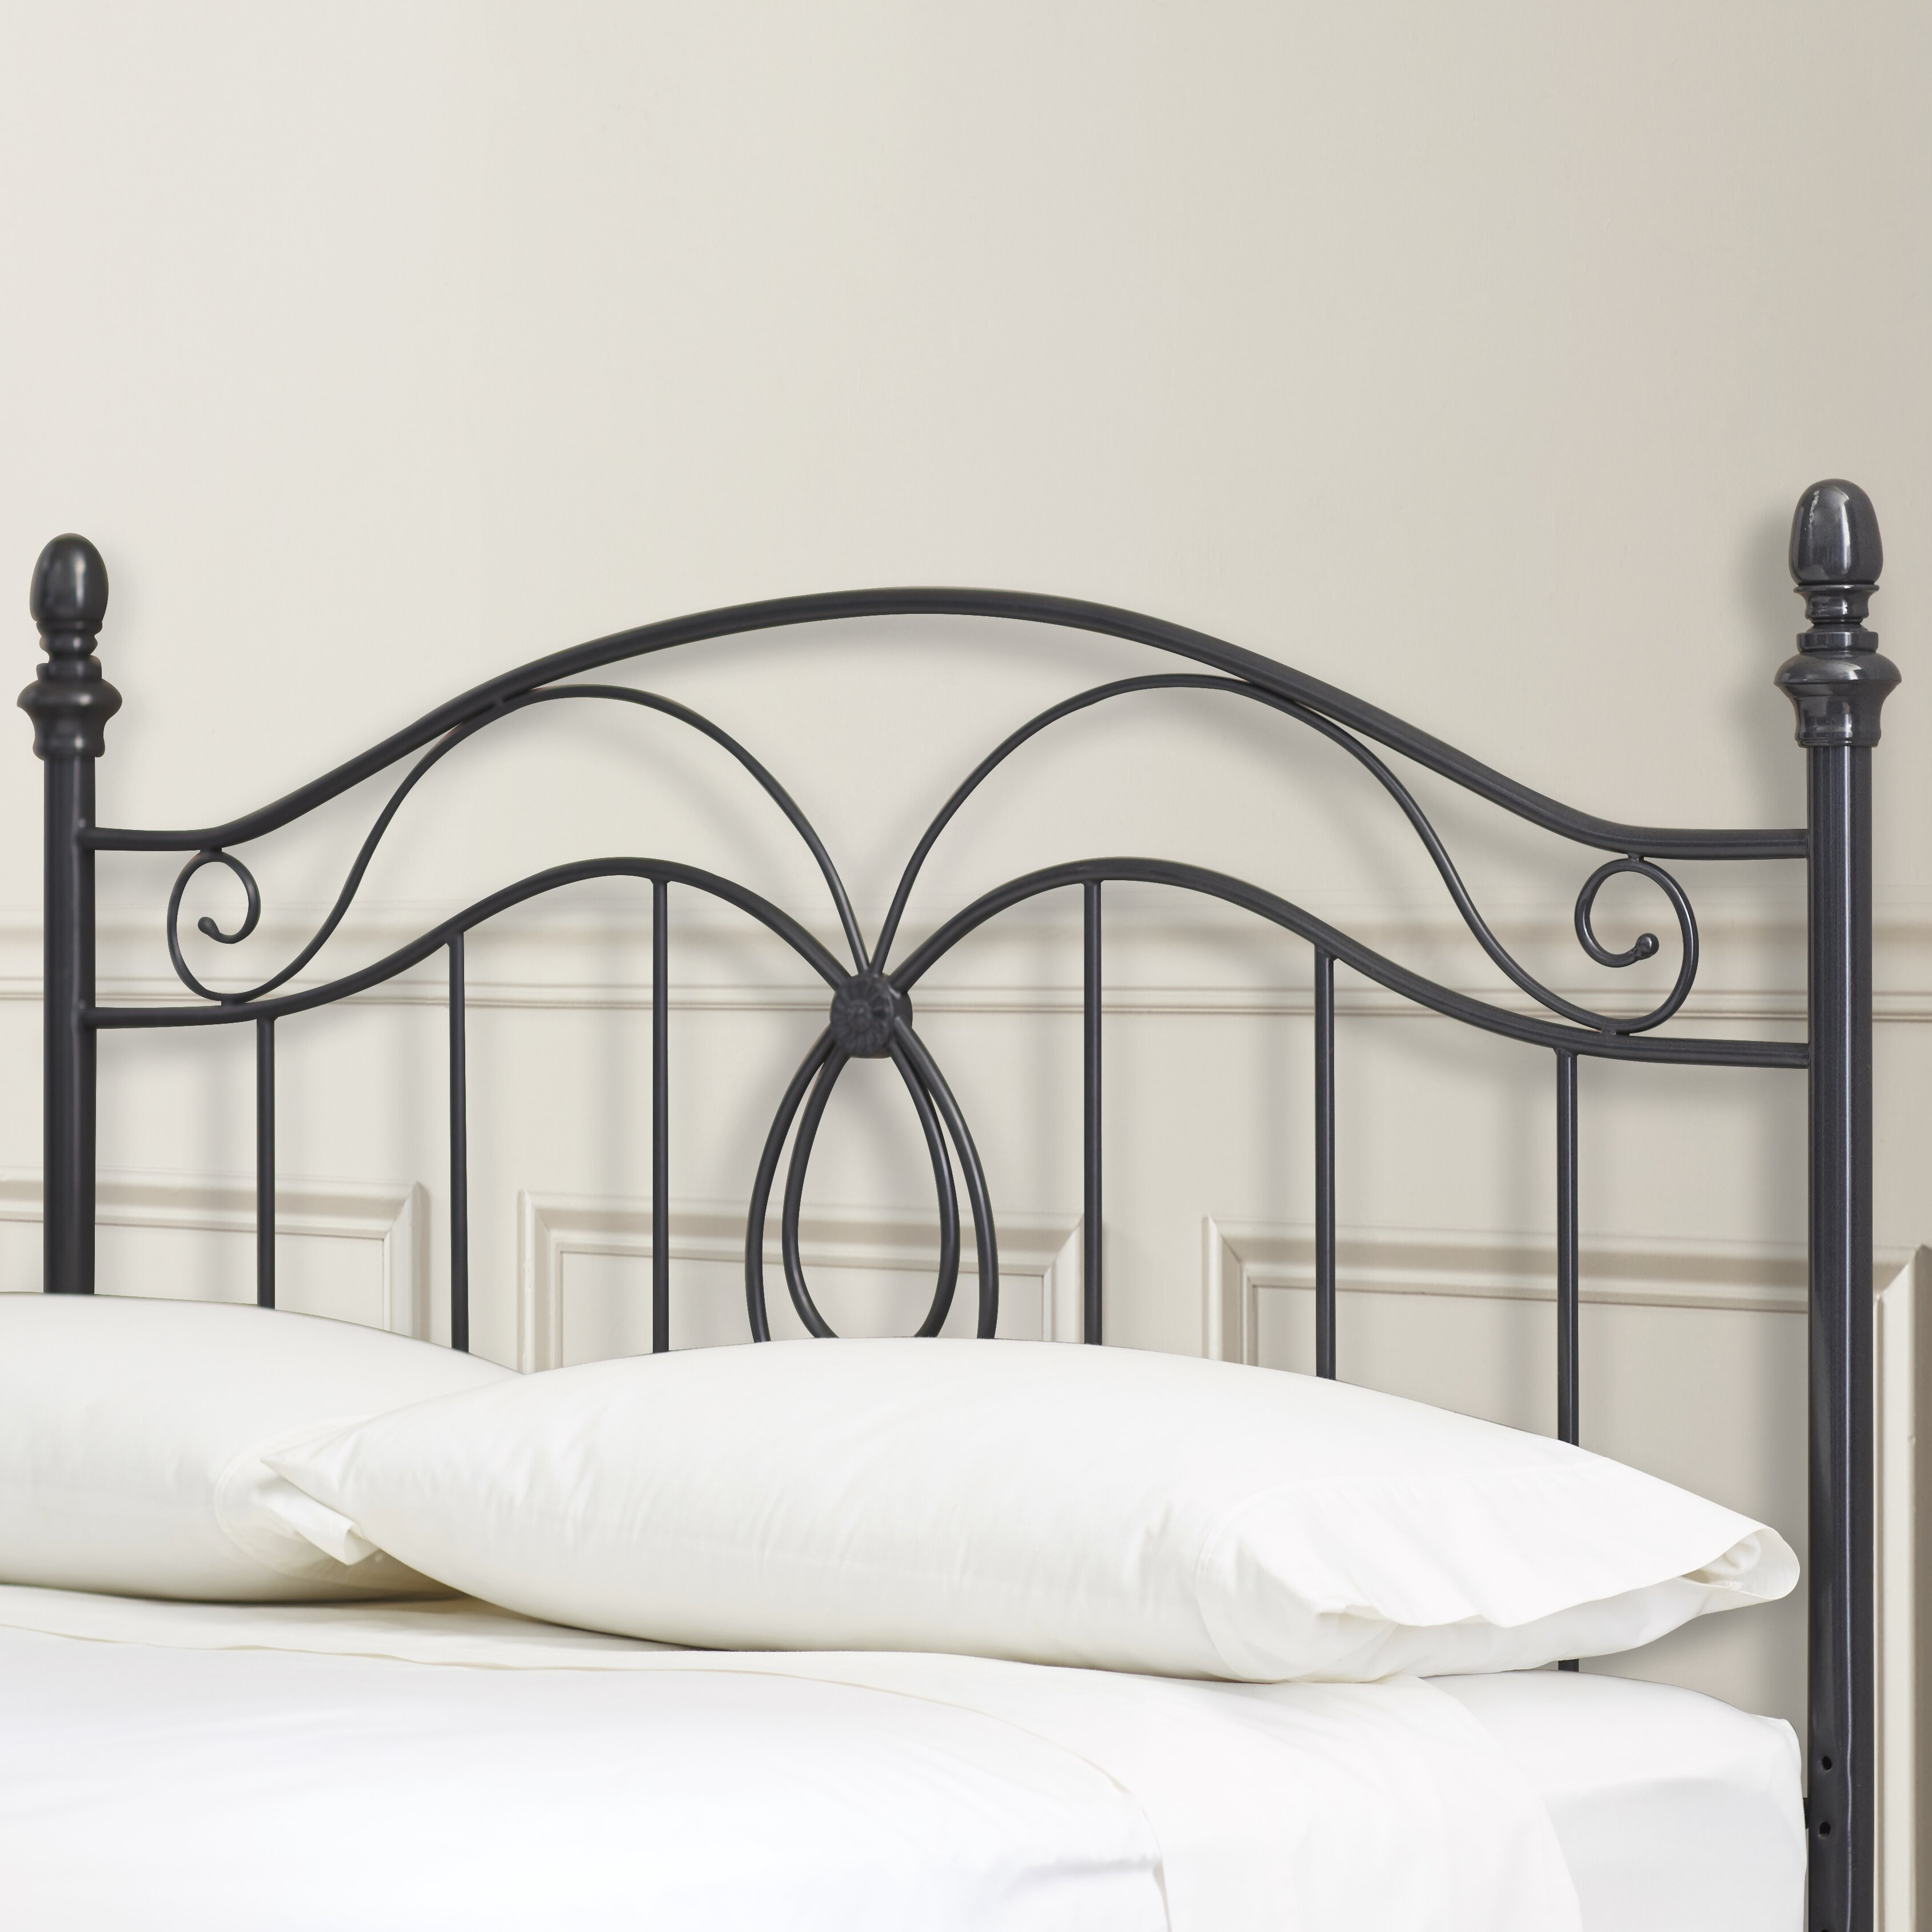 frames for king bedroom and images footboard frame awesome bed big pictures also twin enchanting metal inspirations headboard